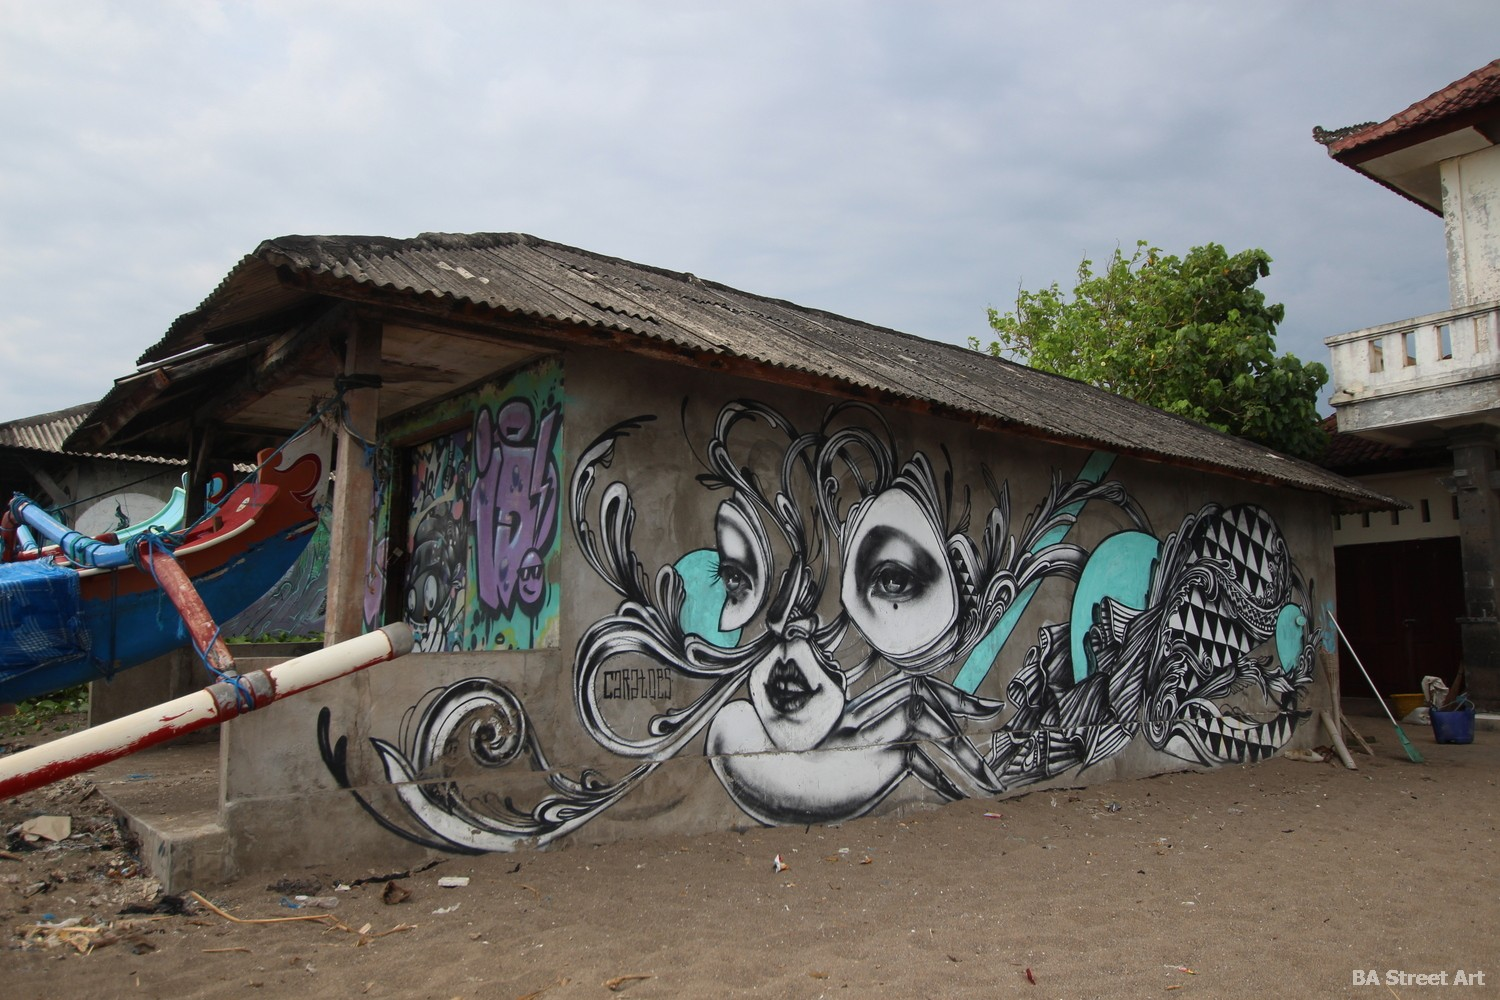 nelayan beach canggu bali sand waves sea fisherman shack hut graffiti street art mural buenosairesstreetart.com